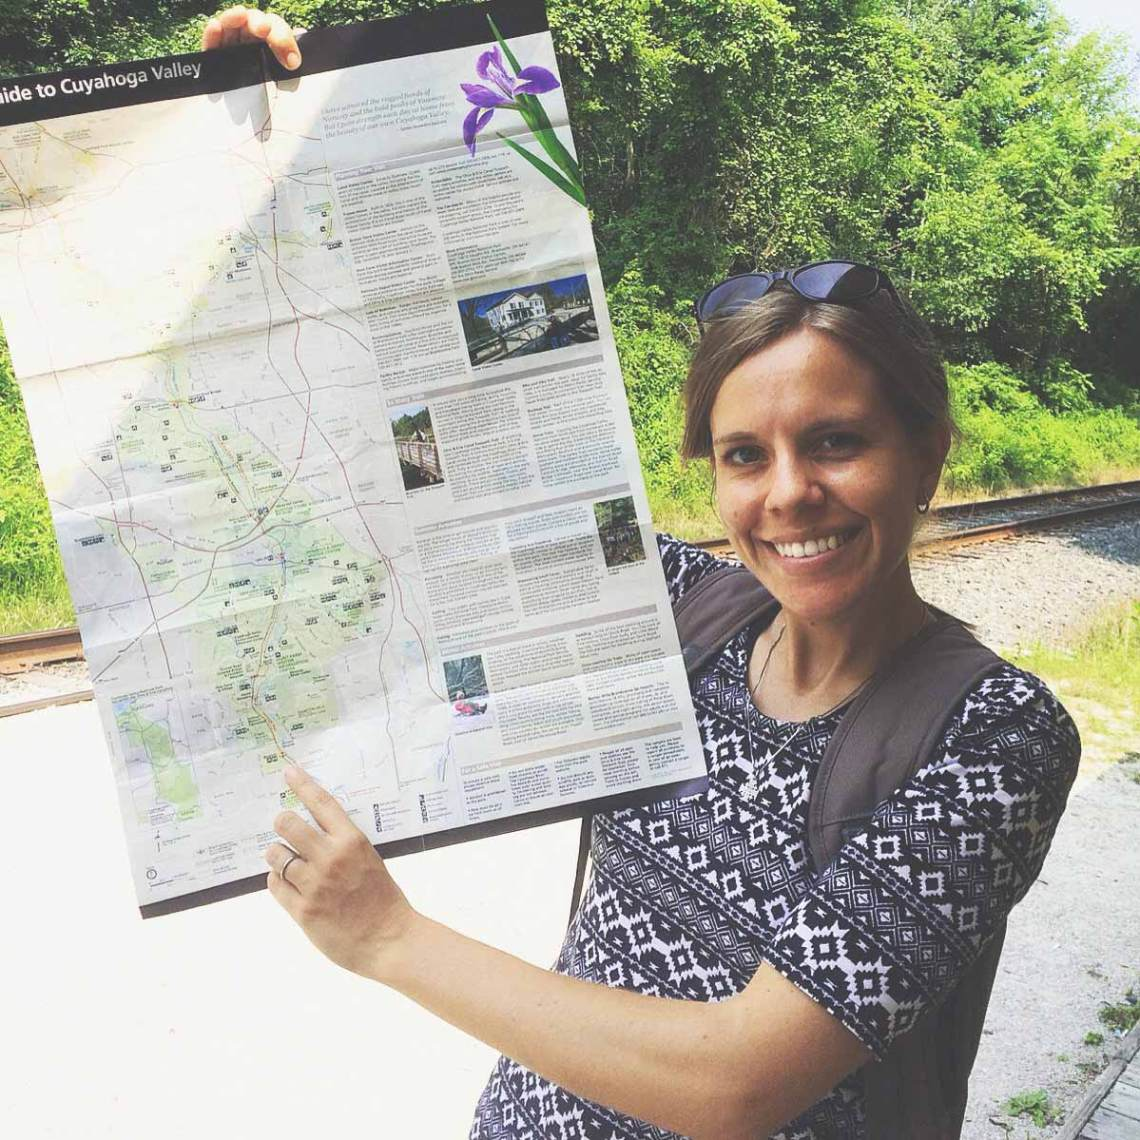 hike_and_draw_towpath_trail_cuyahoga_karla_national_park_quest